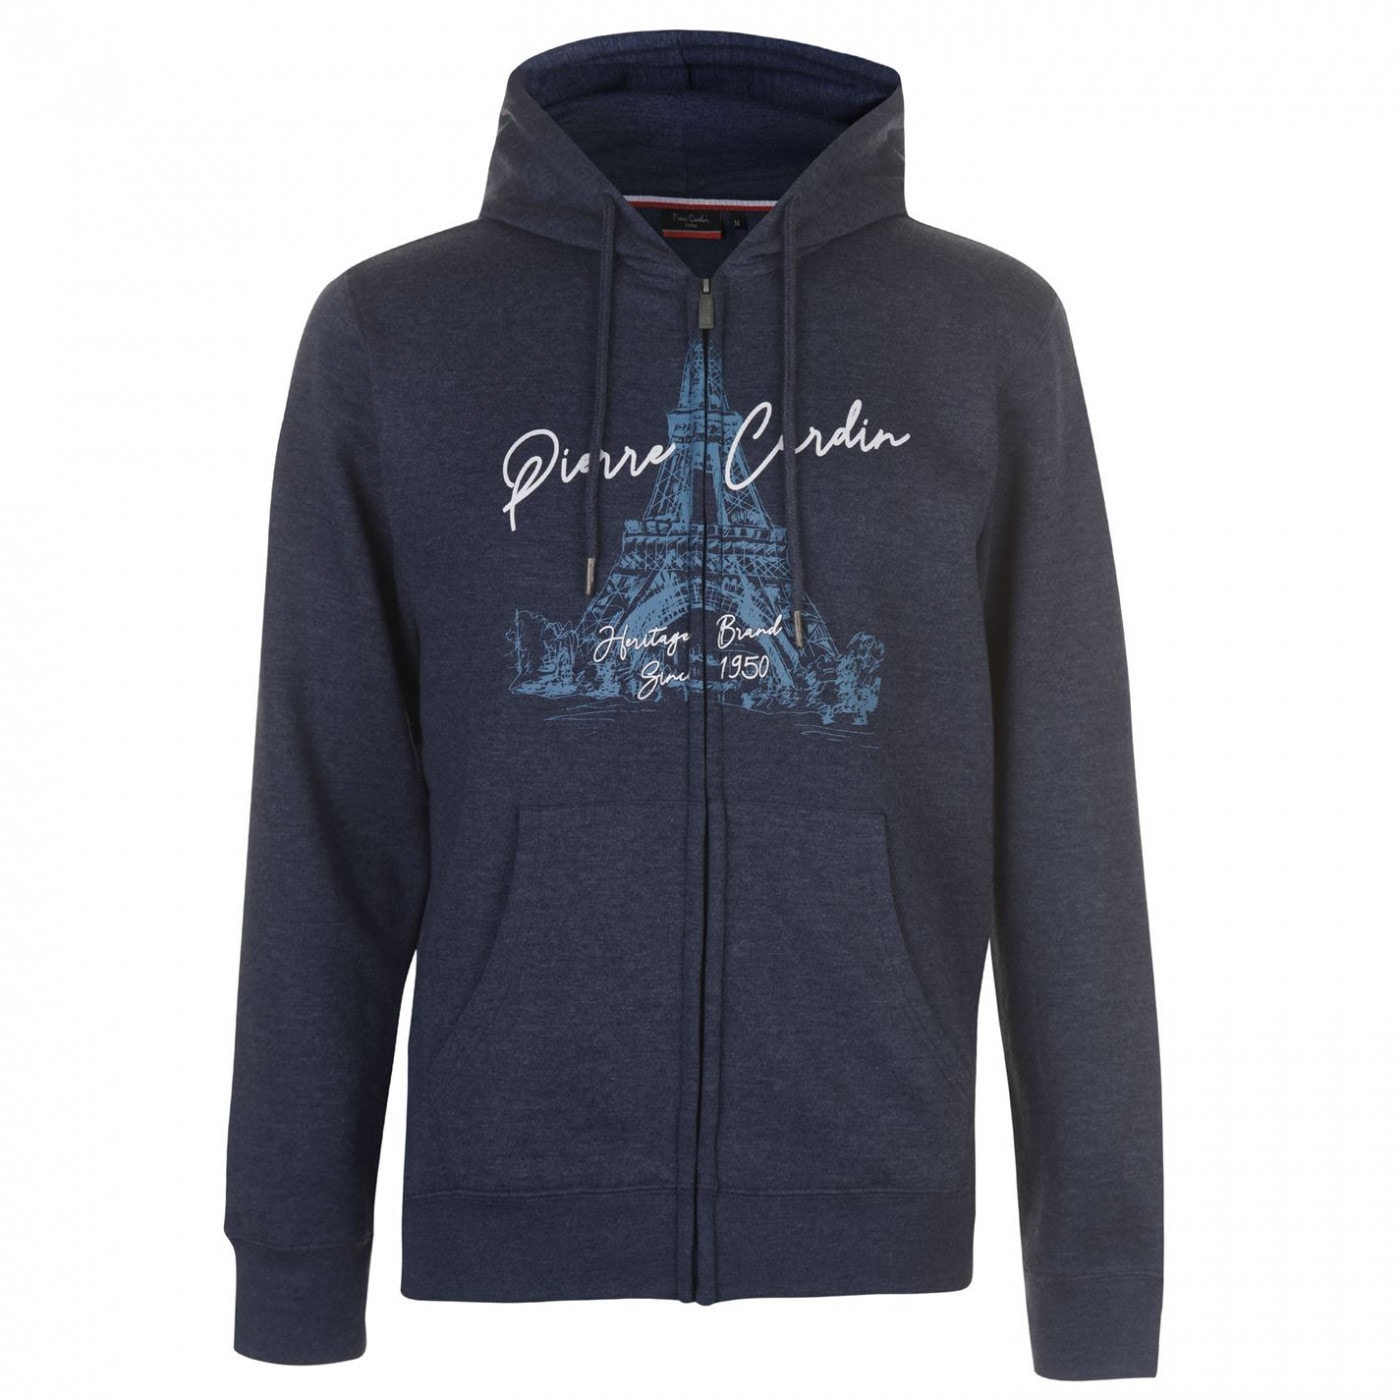 Pierre Cardin Printed Zip Up Hoodie Mens